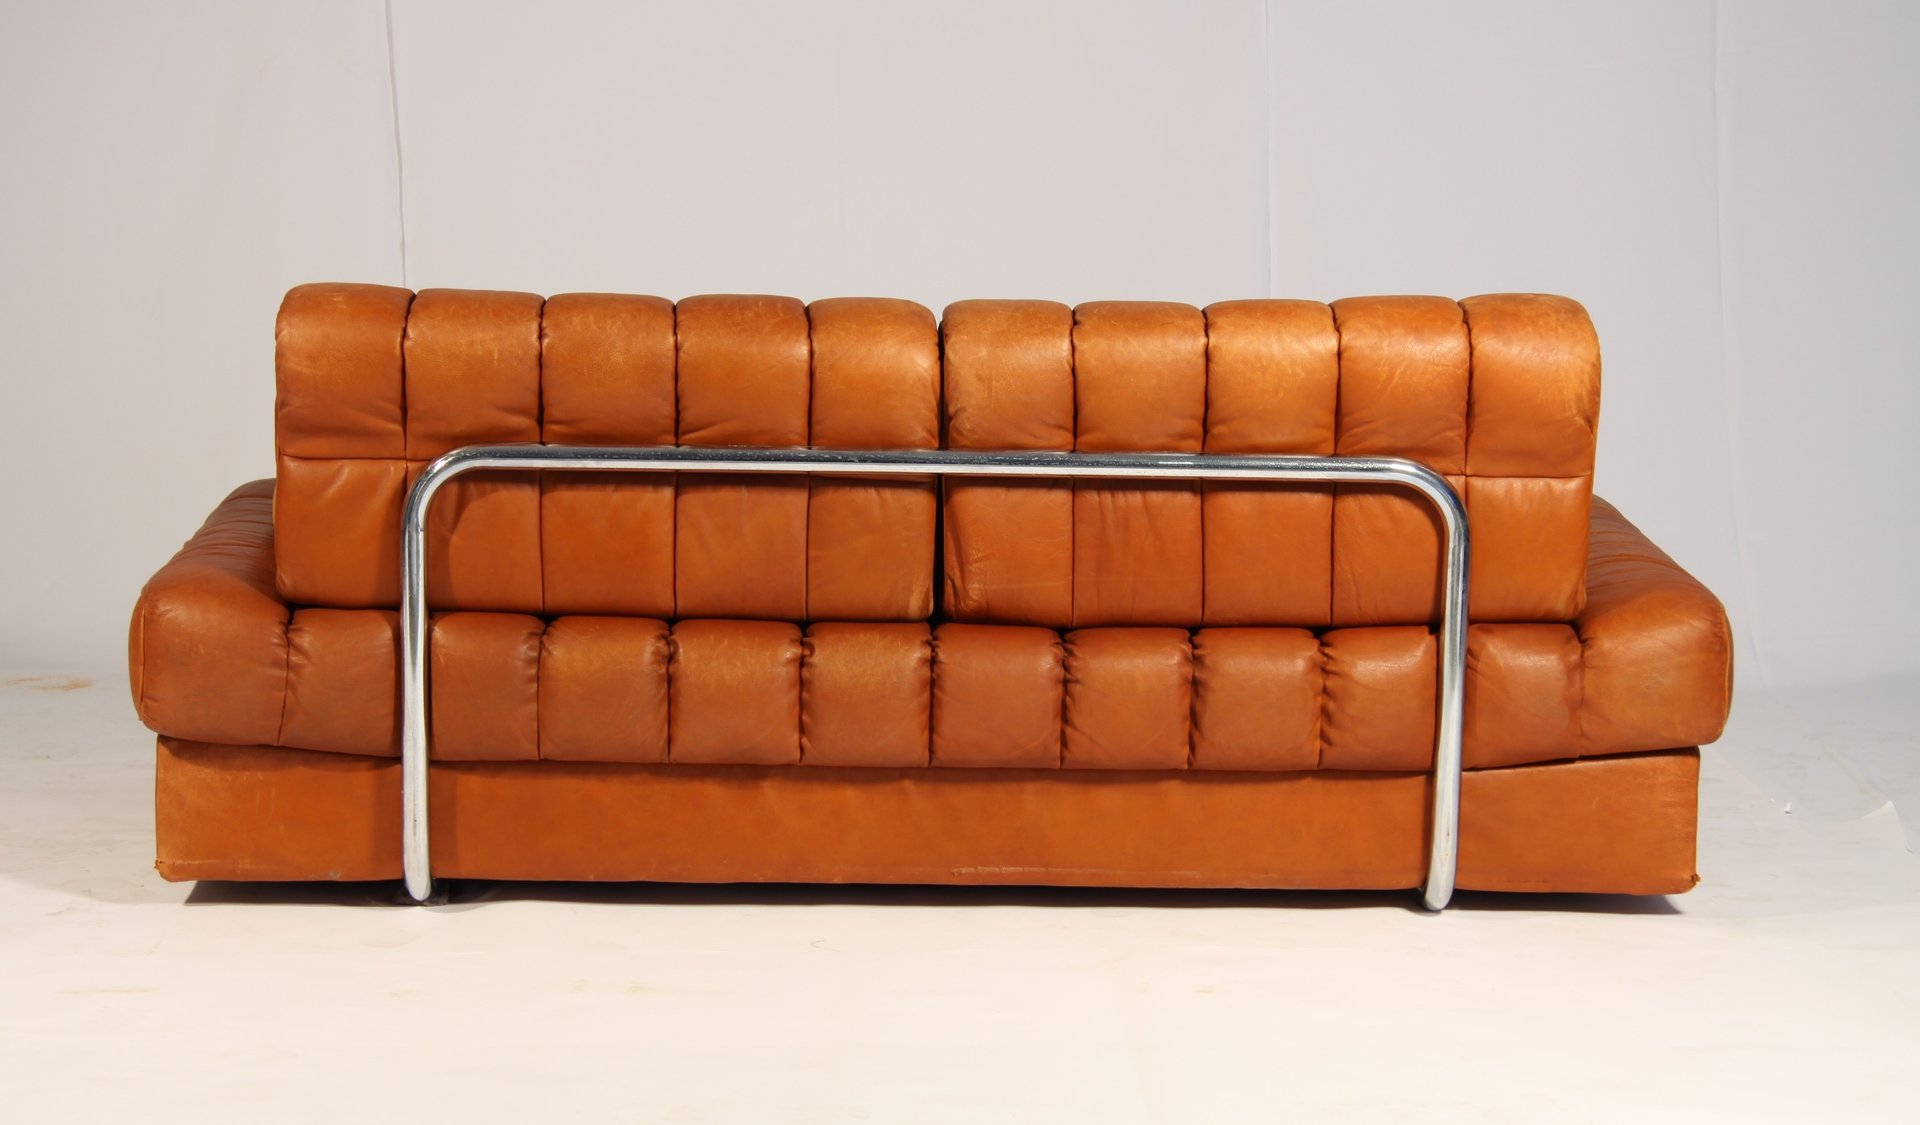 Vintage DS 85 Brown Leather Daybed from de Sede 1960s for sale at